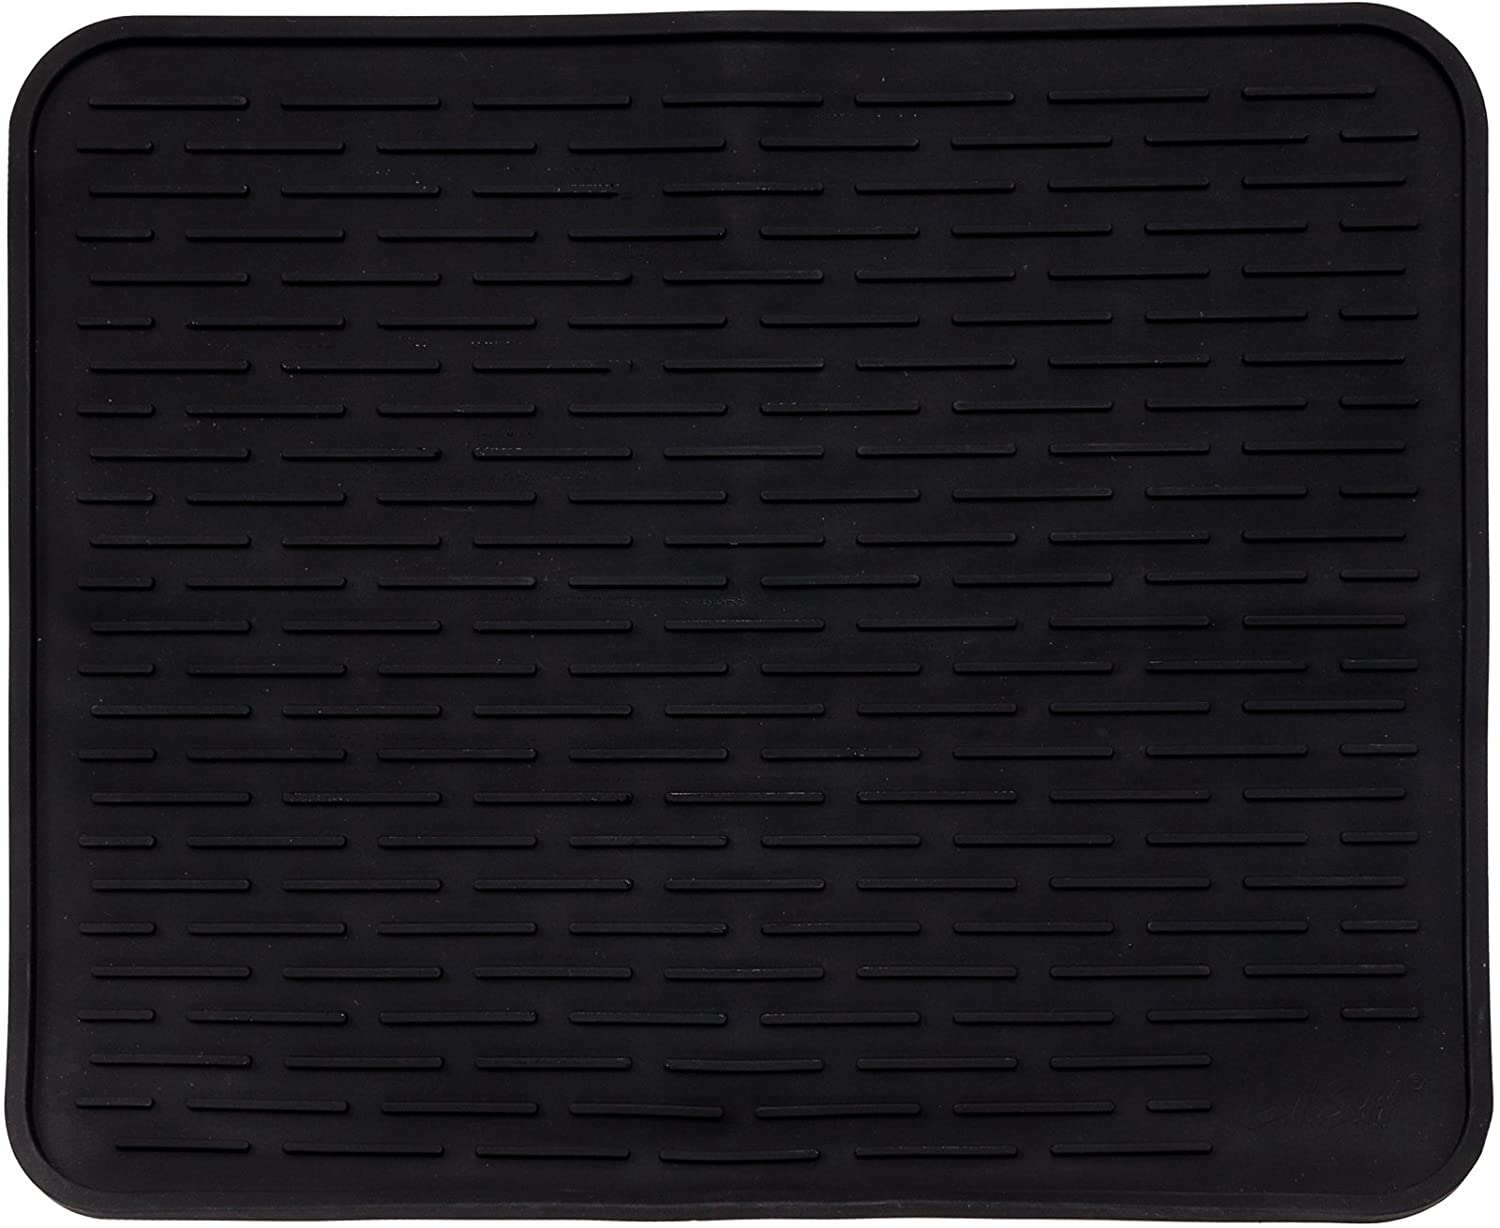 "22"" x 18"" XL Silicone Dish Drying Mat - Large Dish Drainer Mat and Trivet by LISH (Black)"